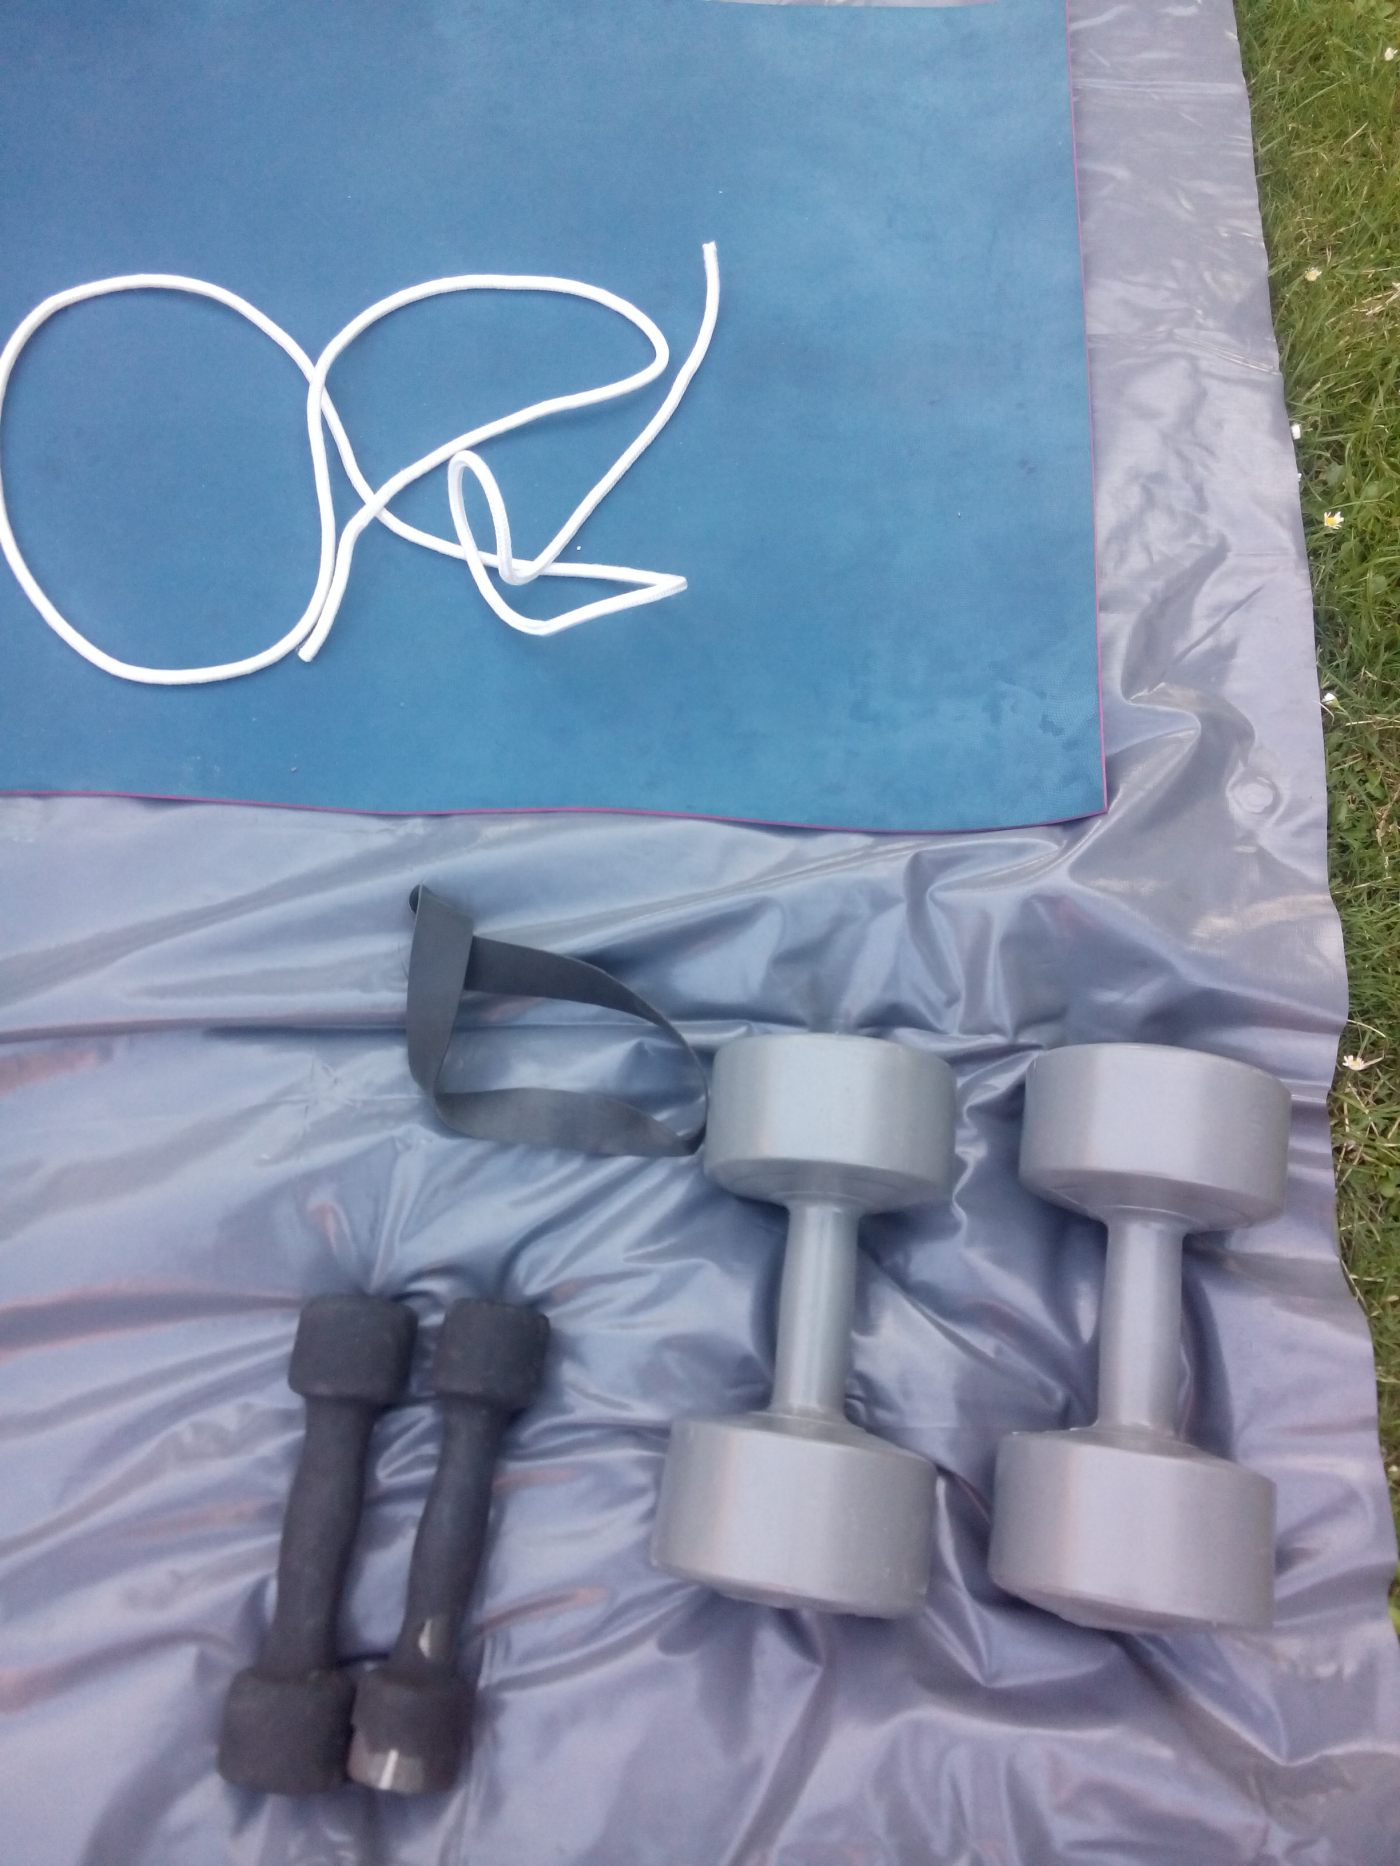 two sets of dumbells a skipping rope and a yoga mat